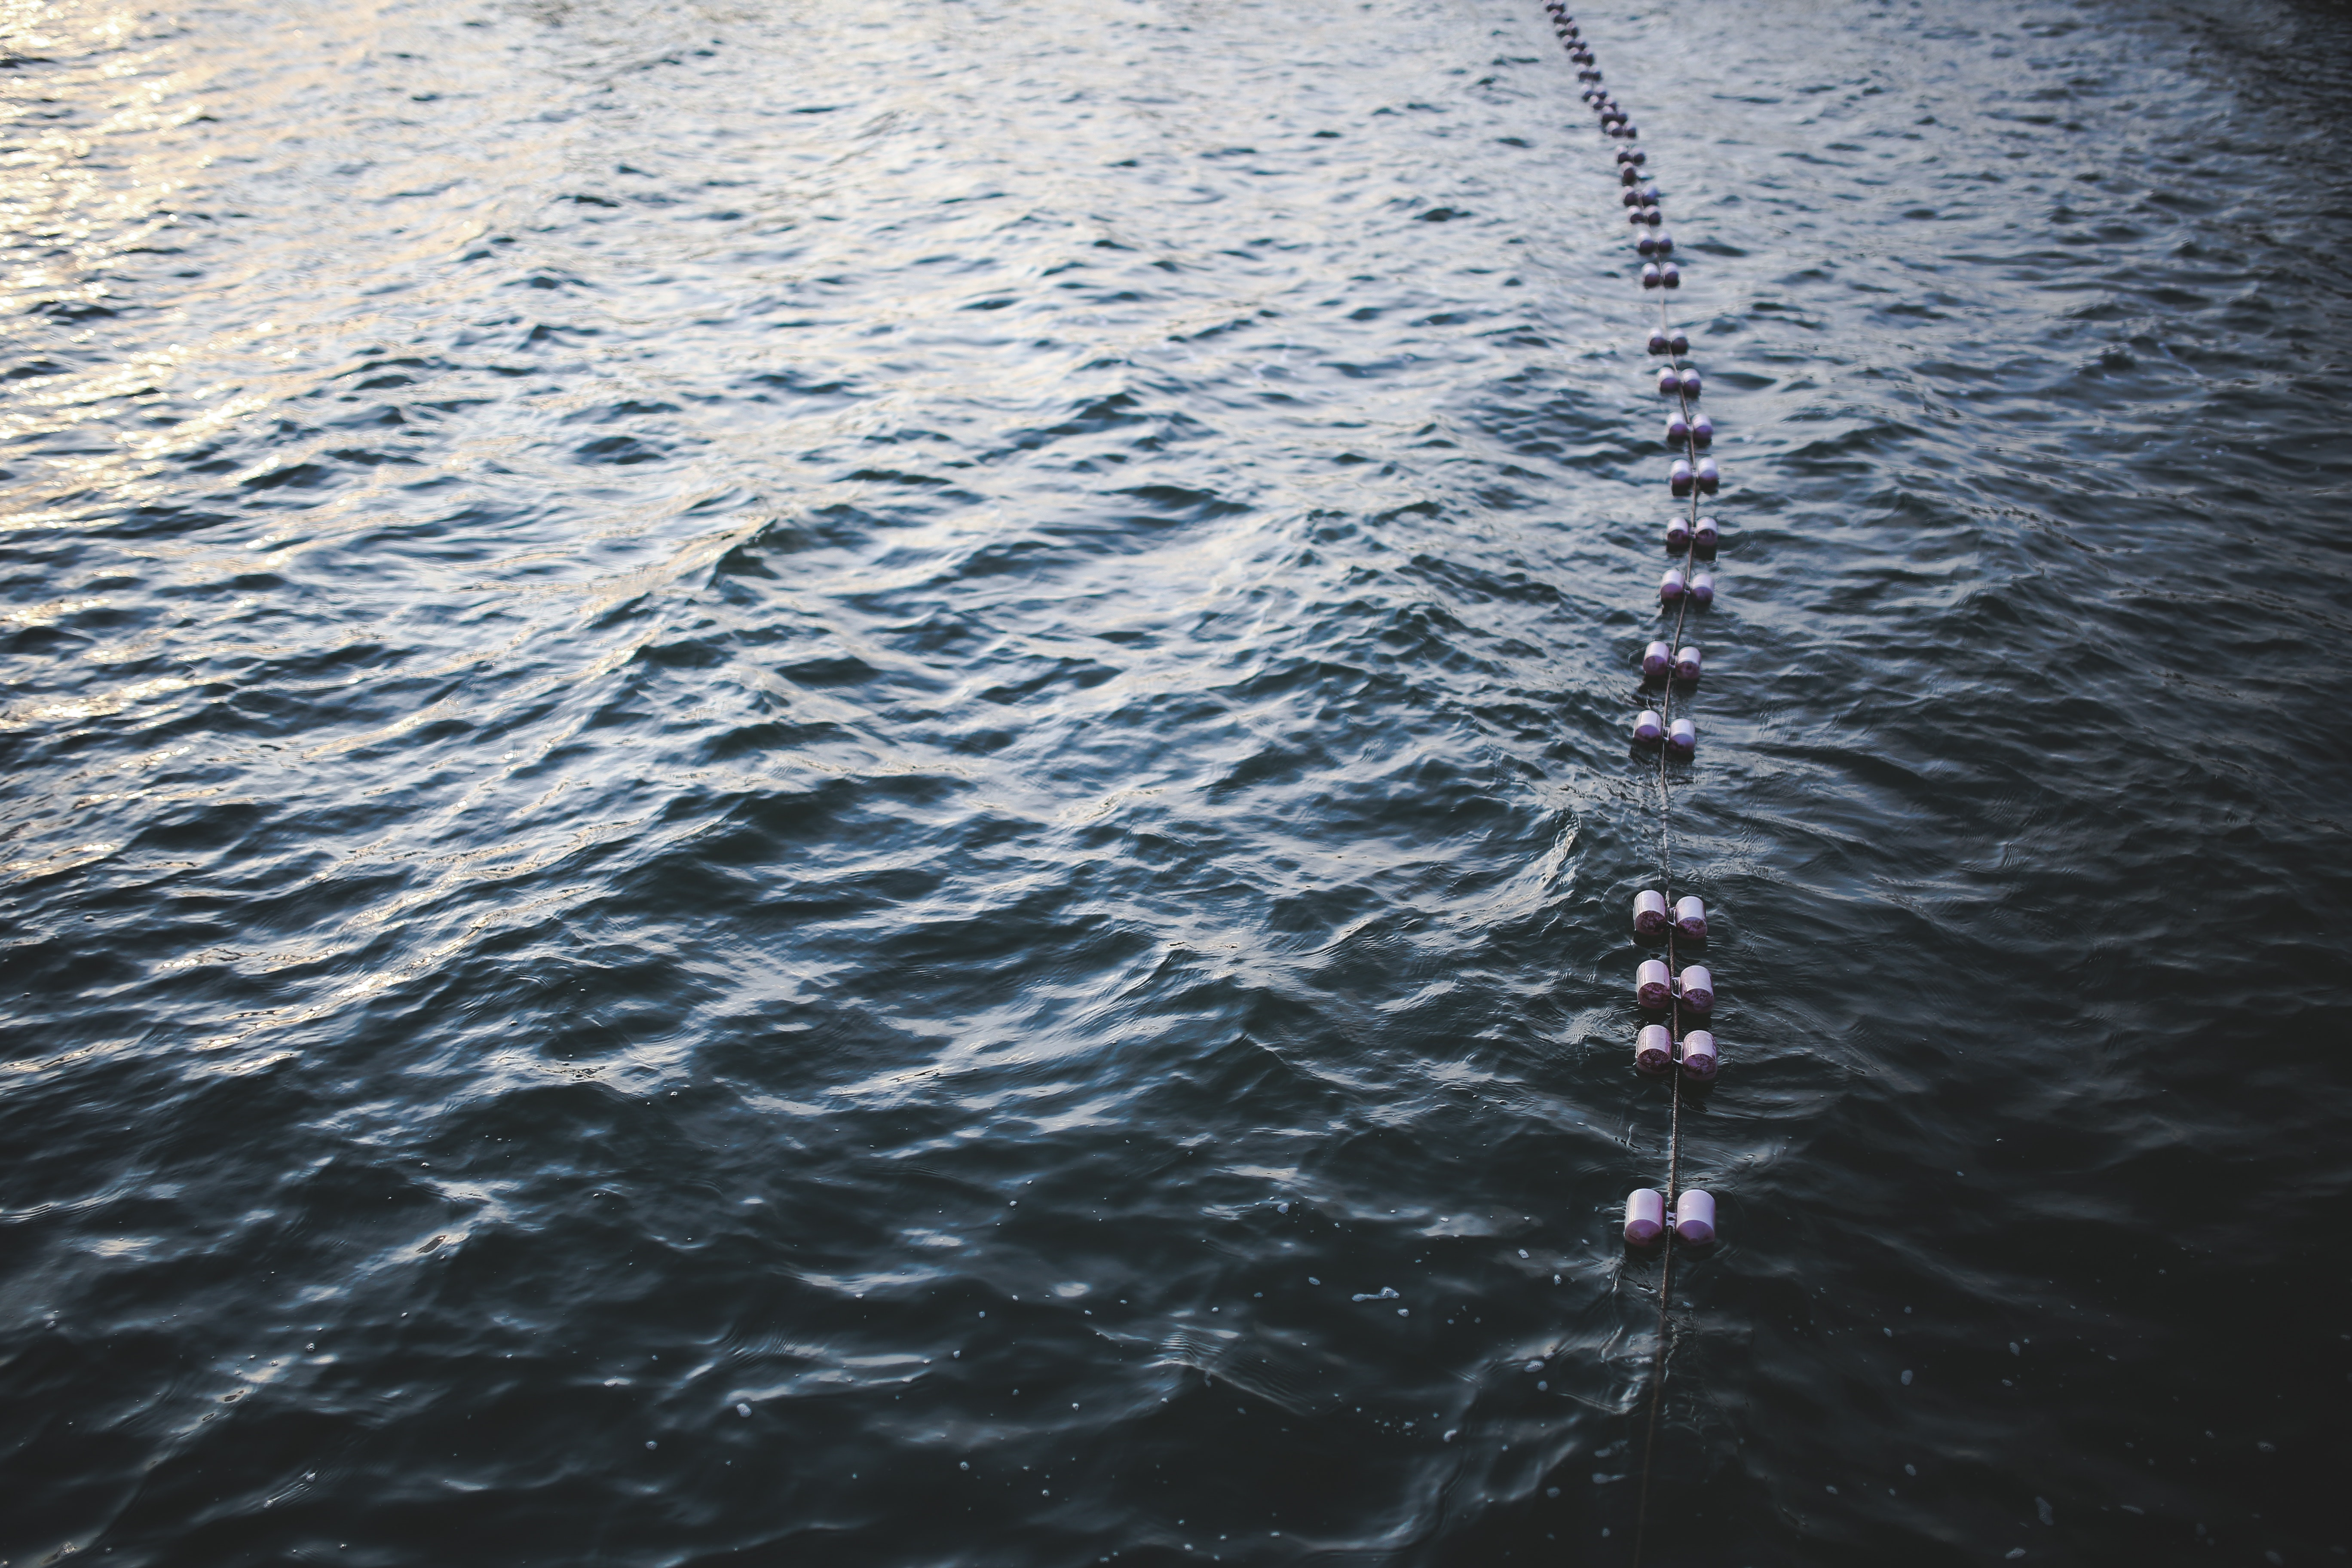 Buoys floating on top of the water photo